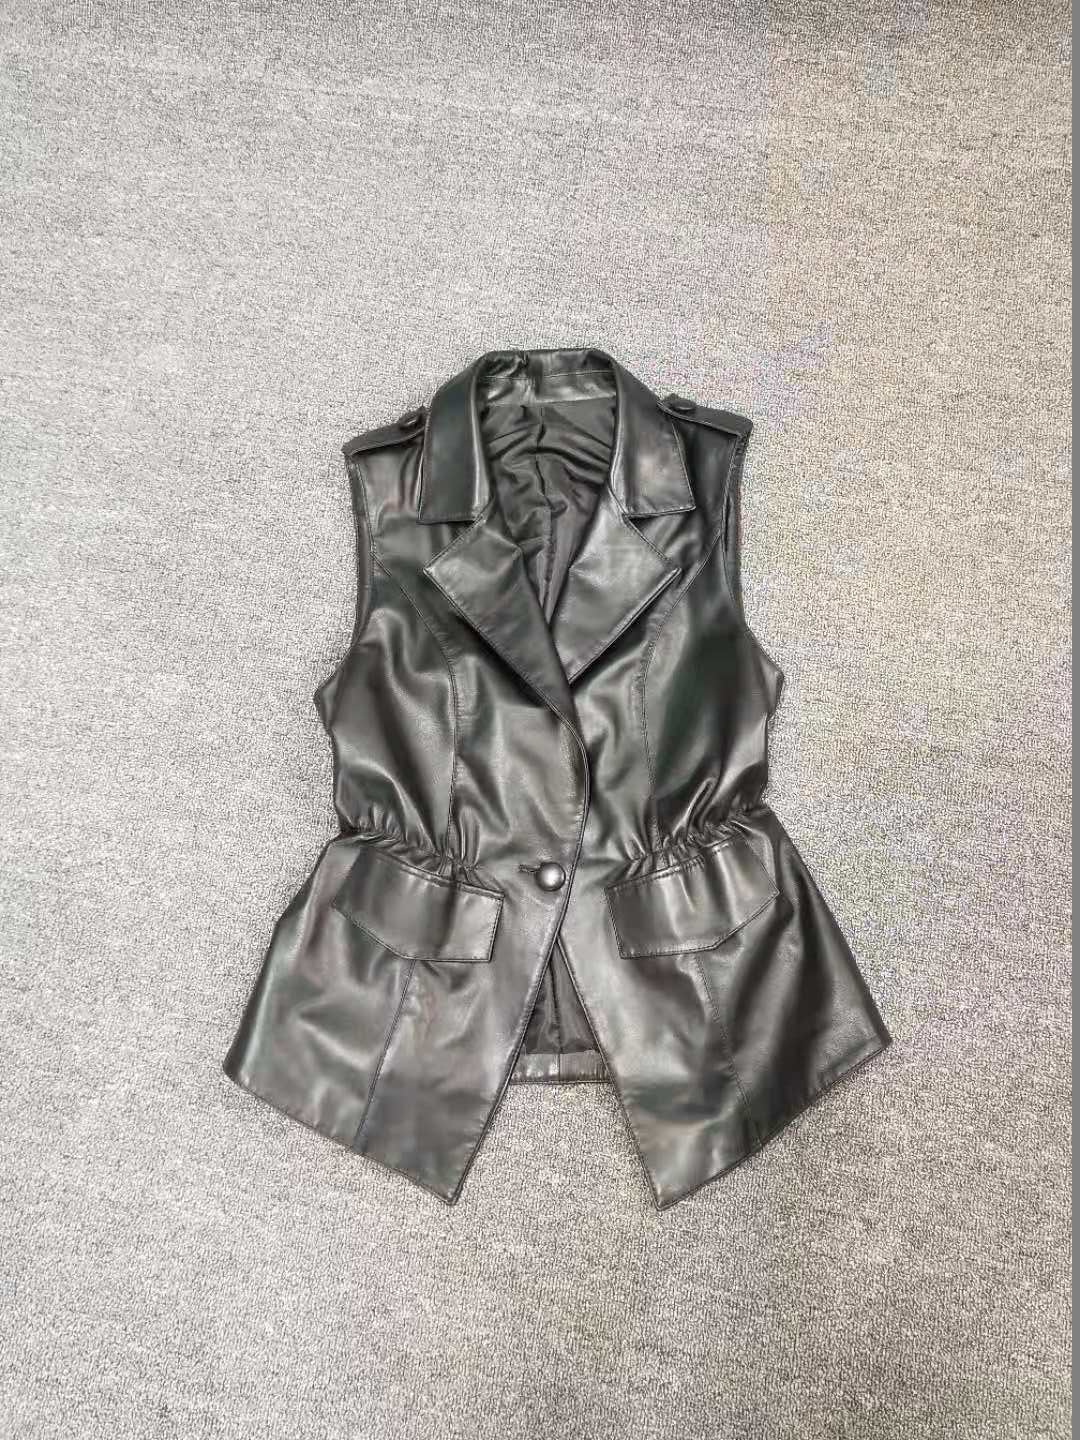 Tong Er Bao womens short leather jacket, spring and autumn show thin, Korean version, all kinds of waistcoat, waistcoat, leather vest, womens self-cultivation